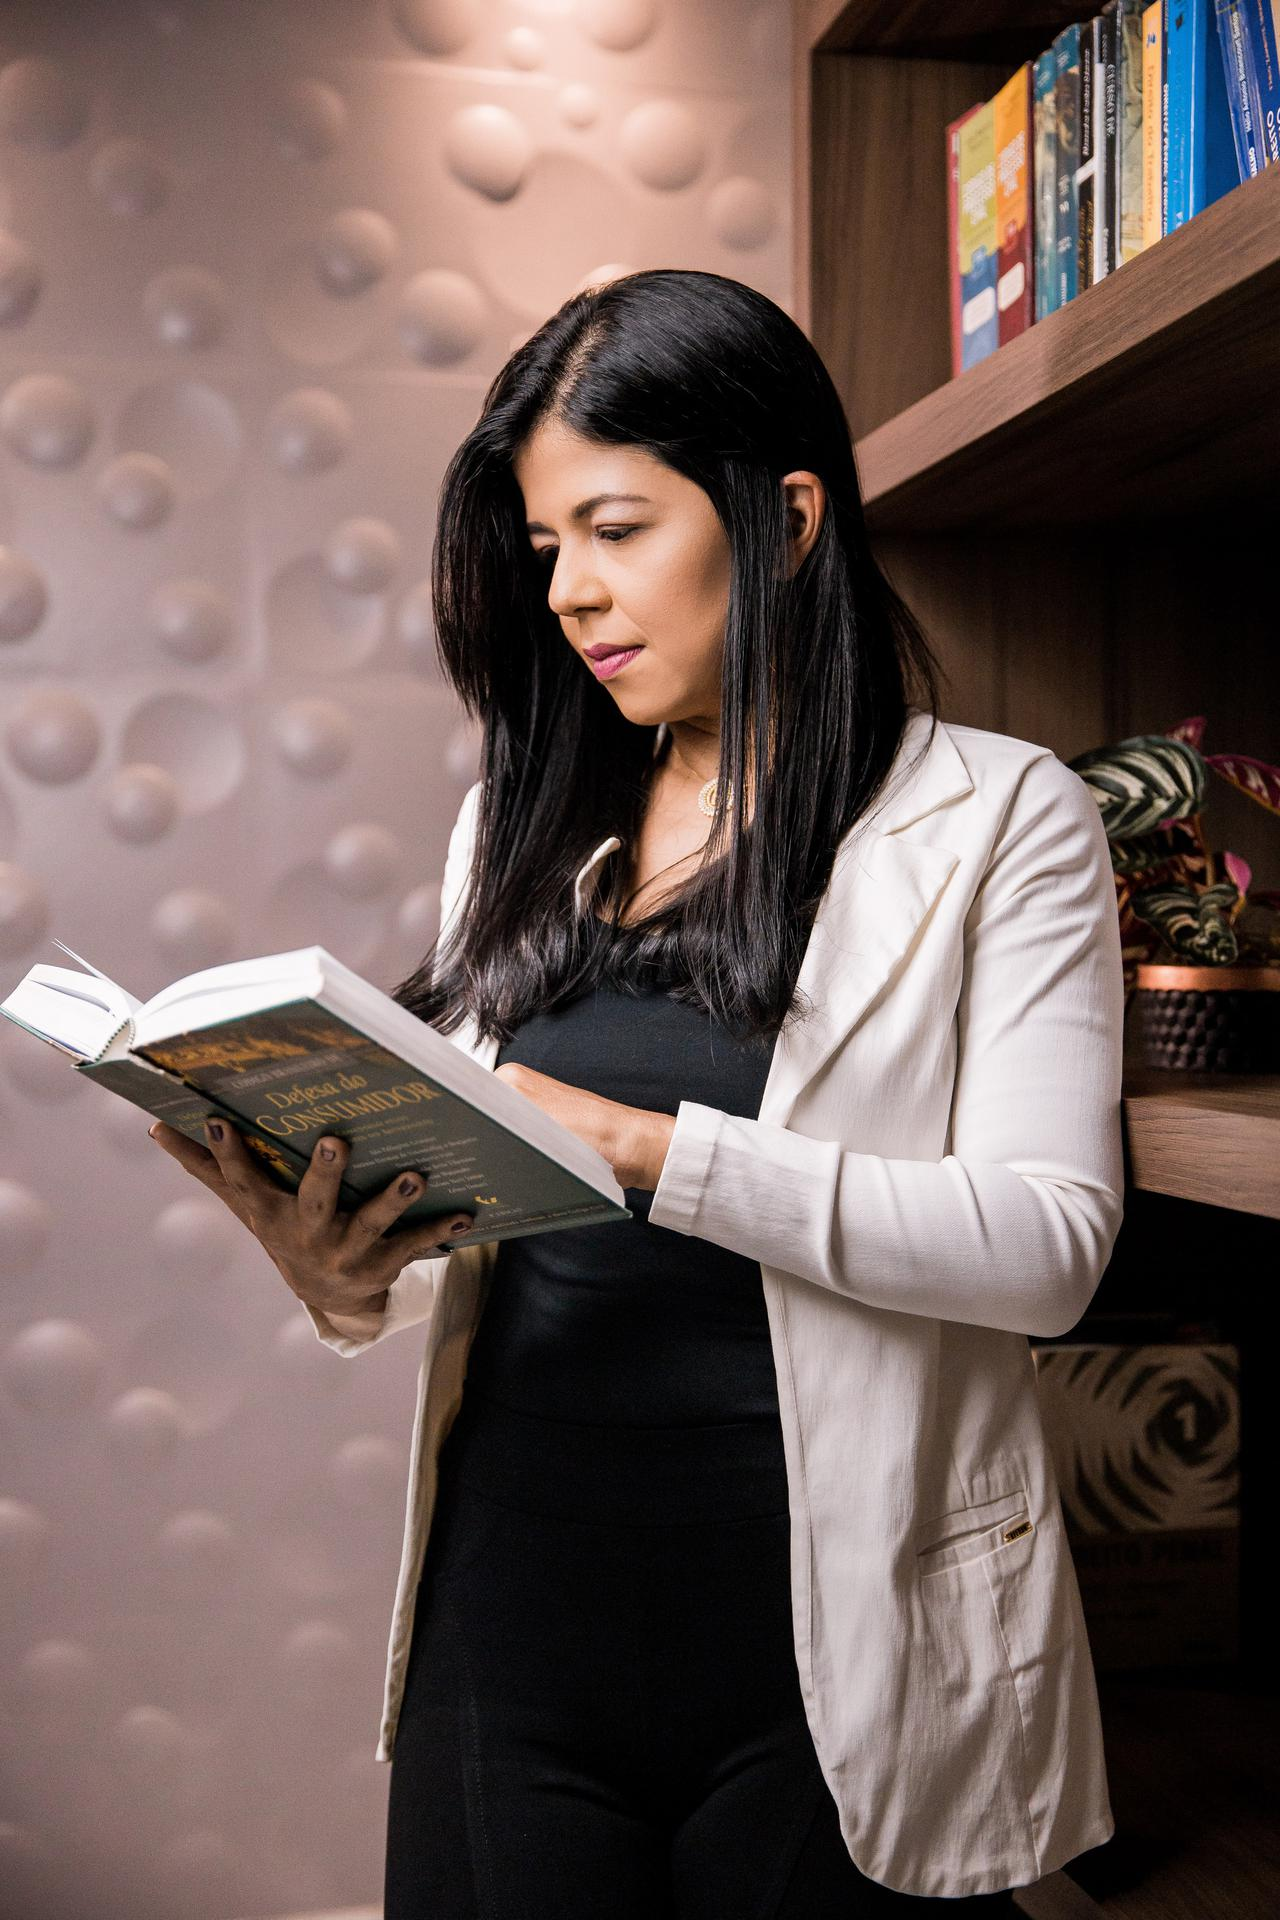 A woman reading a bok in a library. Educating yourself and informing your Sacramento DUI defense attorney is your best route to success in the courtroom.